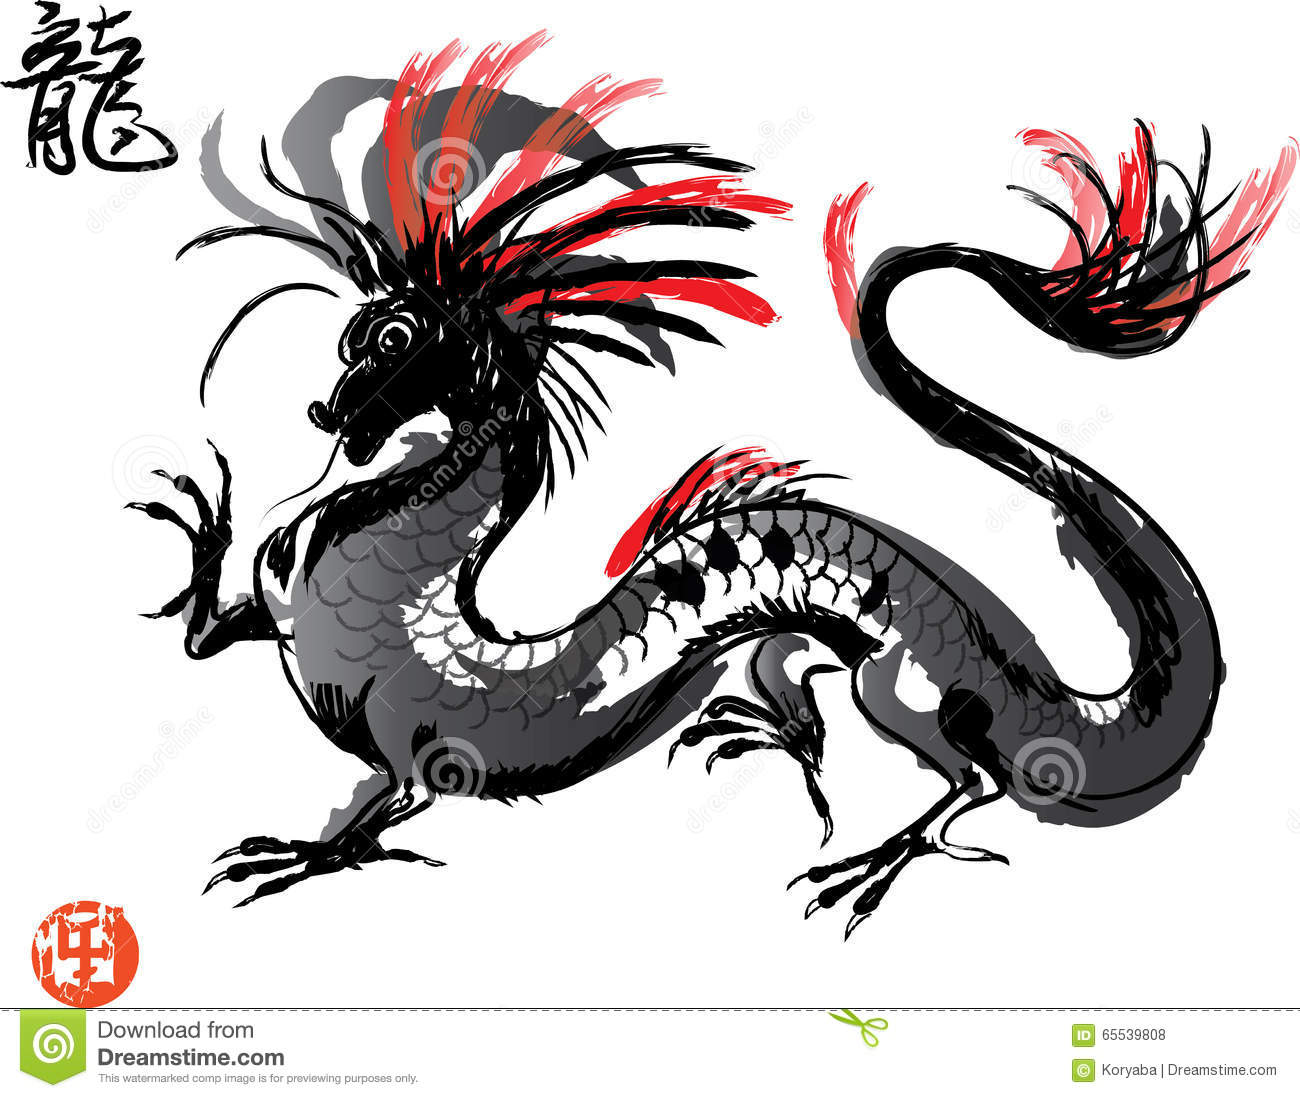 dessin japonais de dragon illustration de vecteur image. Black Bedroom Furniture Sets. Home Design Ideas